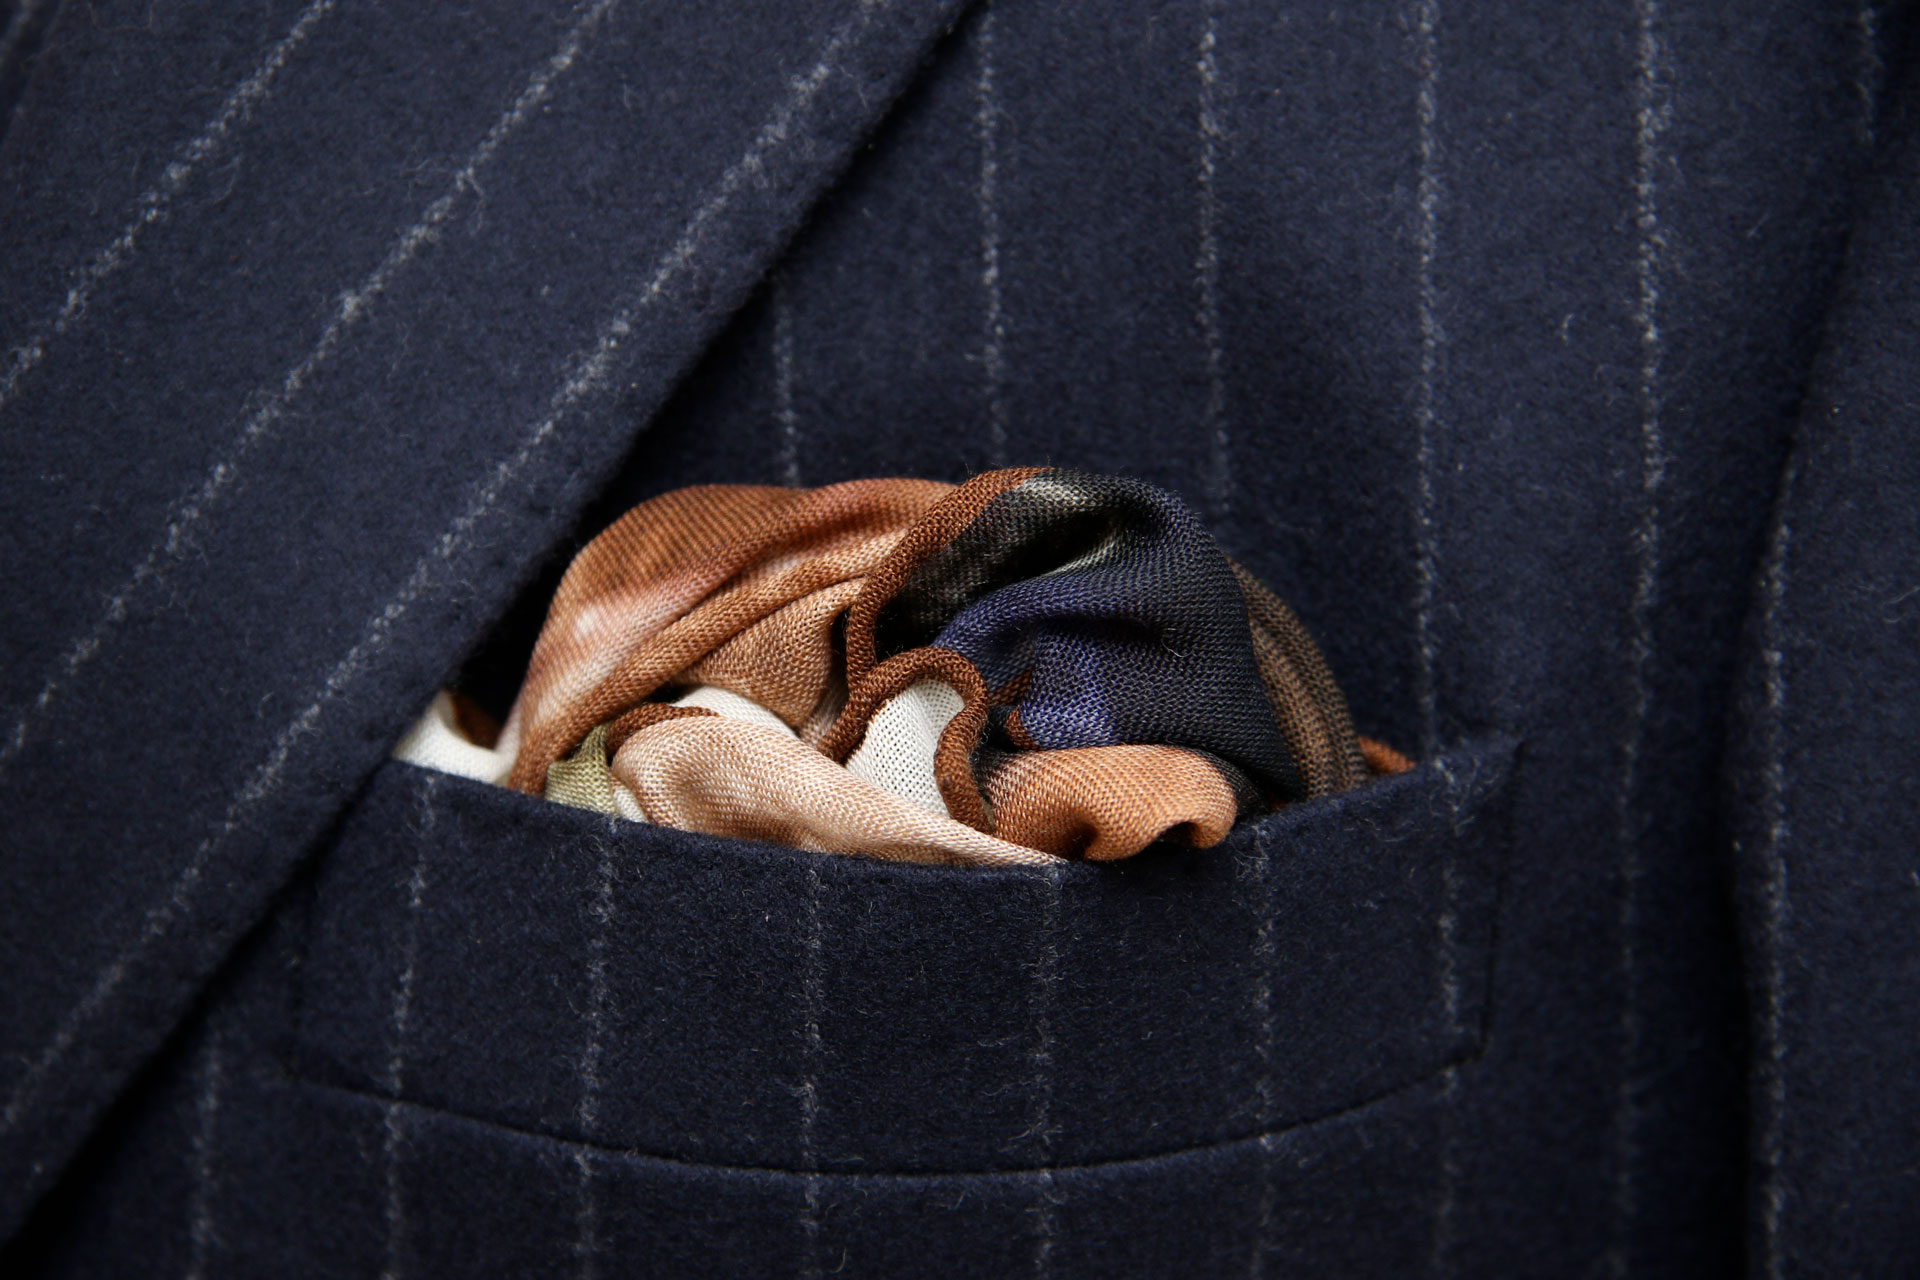 close up view of a pocket square